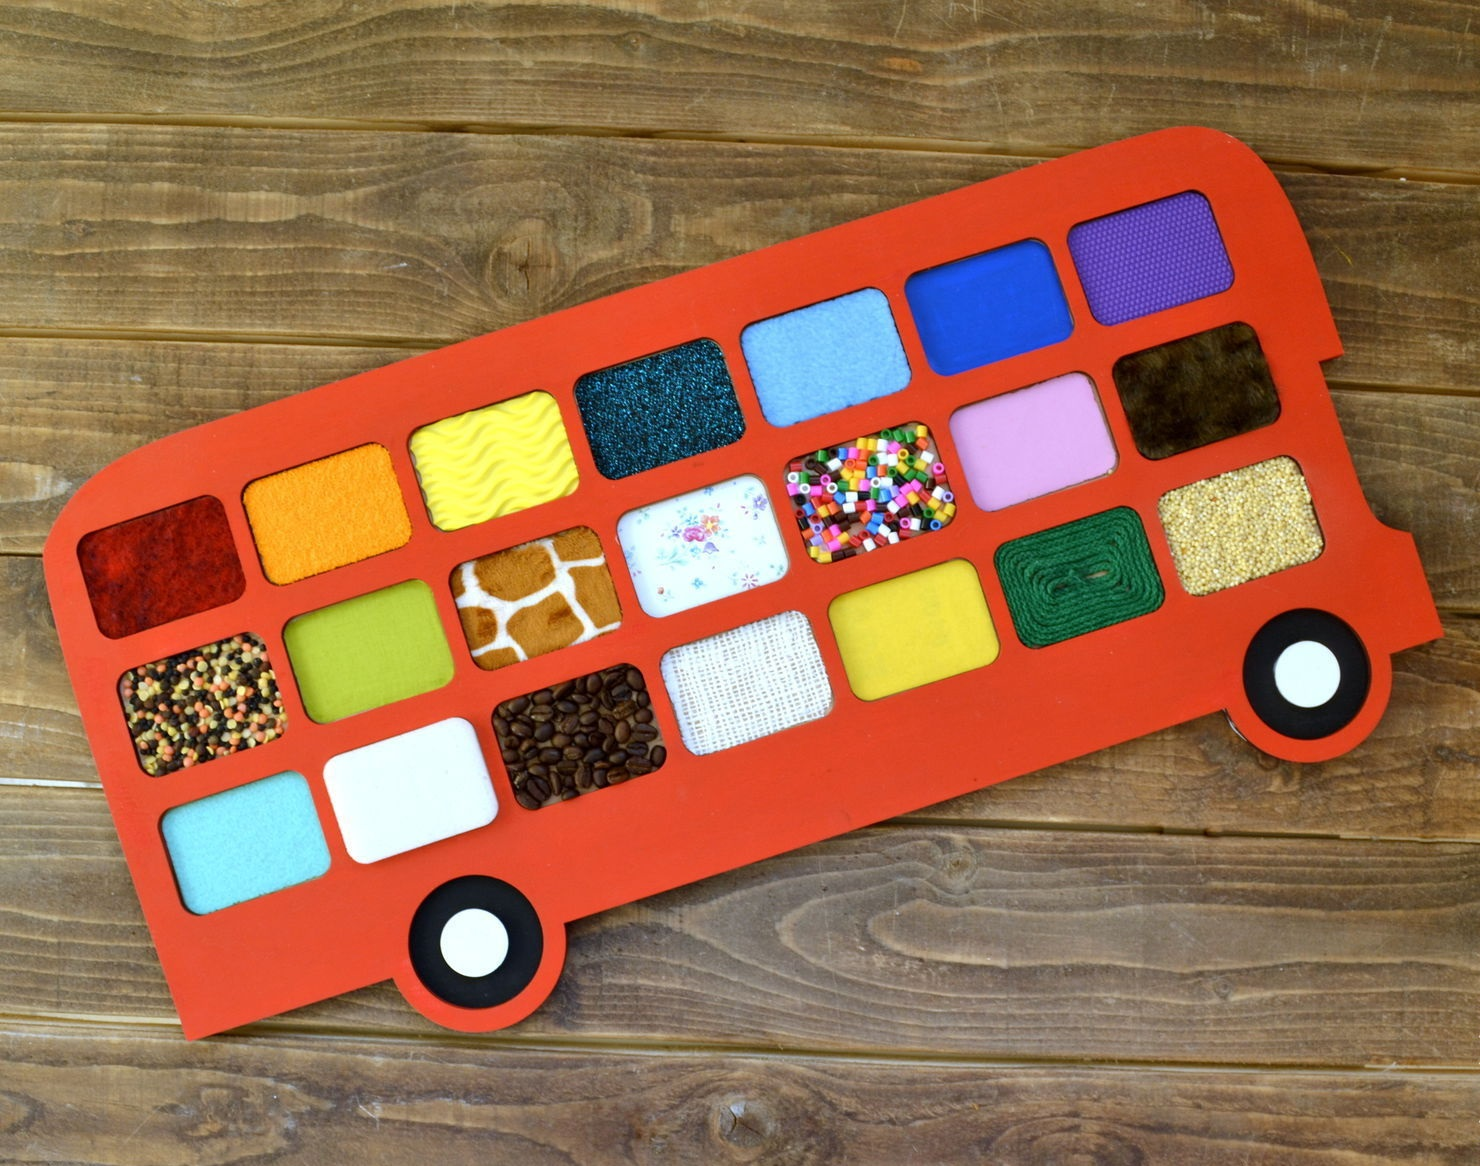 Bus Tactile Game Touch And Match Game Free CDR Vectors Art